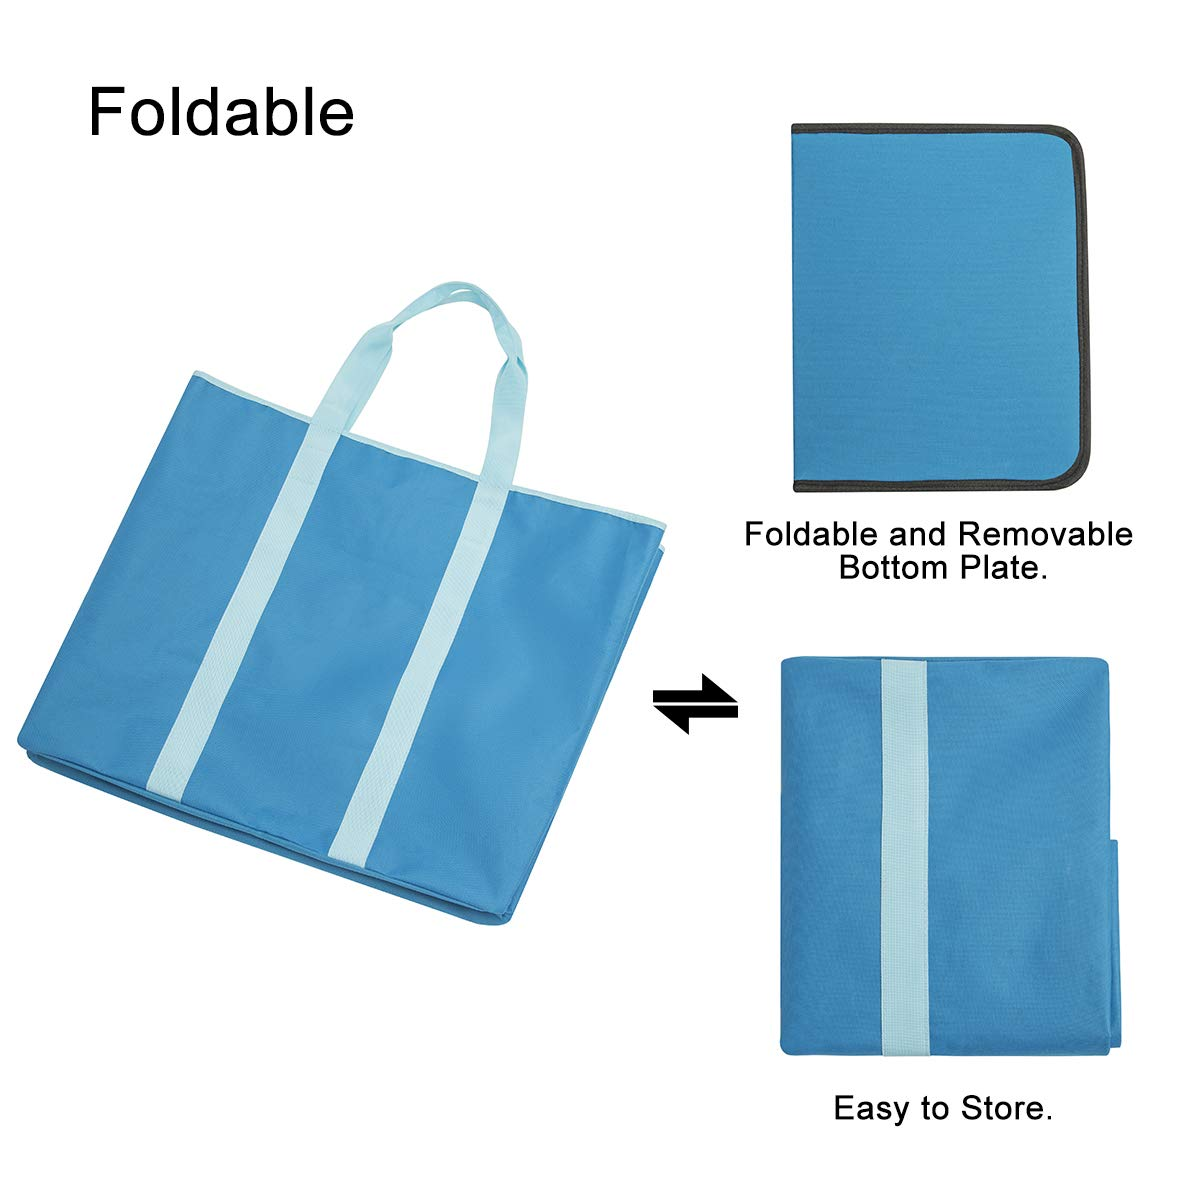 WISHPOOL Extra Large Laundry Basket Shopping Tote Bag Collapsible Laundry Hamper Handles Foldable Laundry Bags Standing Dirty Clothes Storage Organizer (Blue)